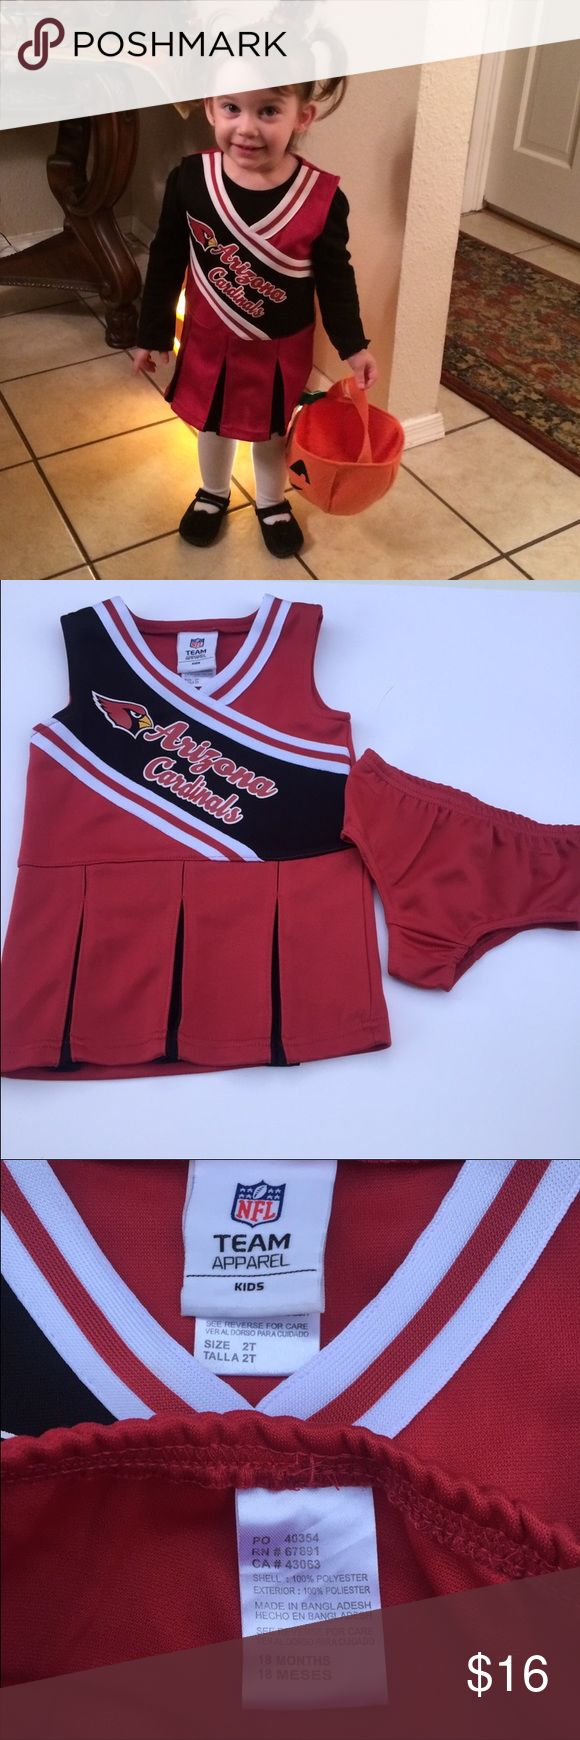 "Arizona Cardinals Football Cheerleader Dress Set Toddler girls Arizona Cardinals Cheerleader Dress with diaper cover  Size 2T ** diaper cover is an 18mo  I think dress fits more like an 18-24mo  17"" Long (shoulder to hem)  •100% Polyester • Officially Licensed NFL Team Apparel Kids Product •  screen printed Logo Across Chest • 1 Piece Dress w/diaper cover  • Pleated 2-Color Cheerleader Skirt • Detailing in Team Colors New without tags, perfect condition. ❌NO TRADES❌ Team NFL Dresses"